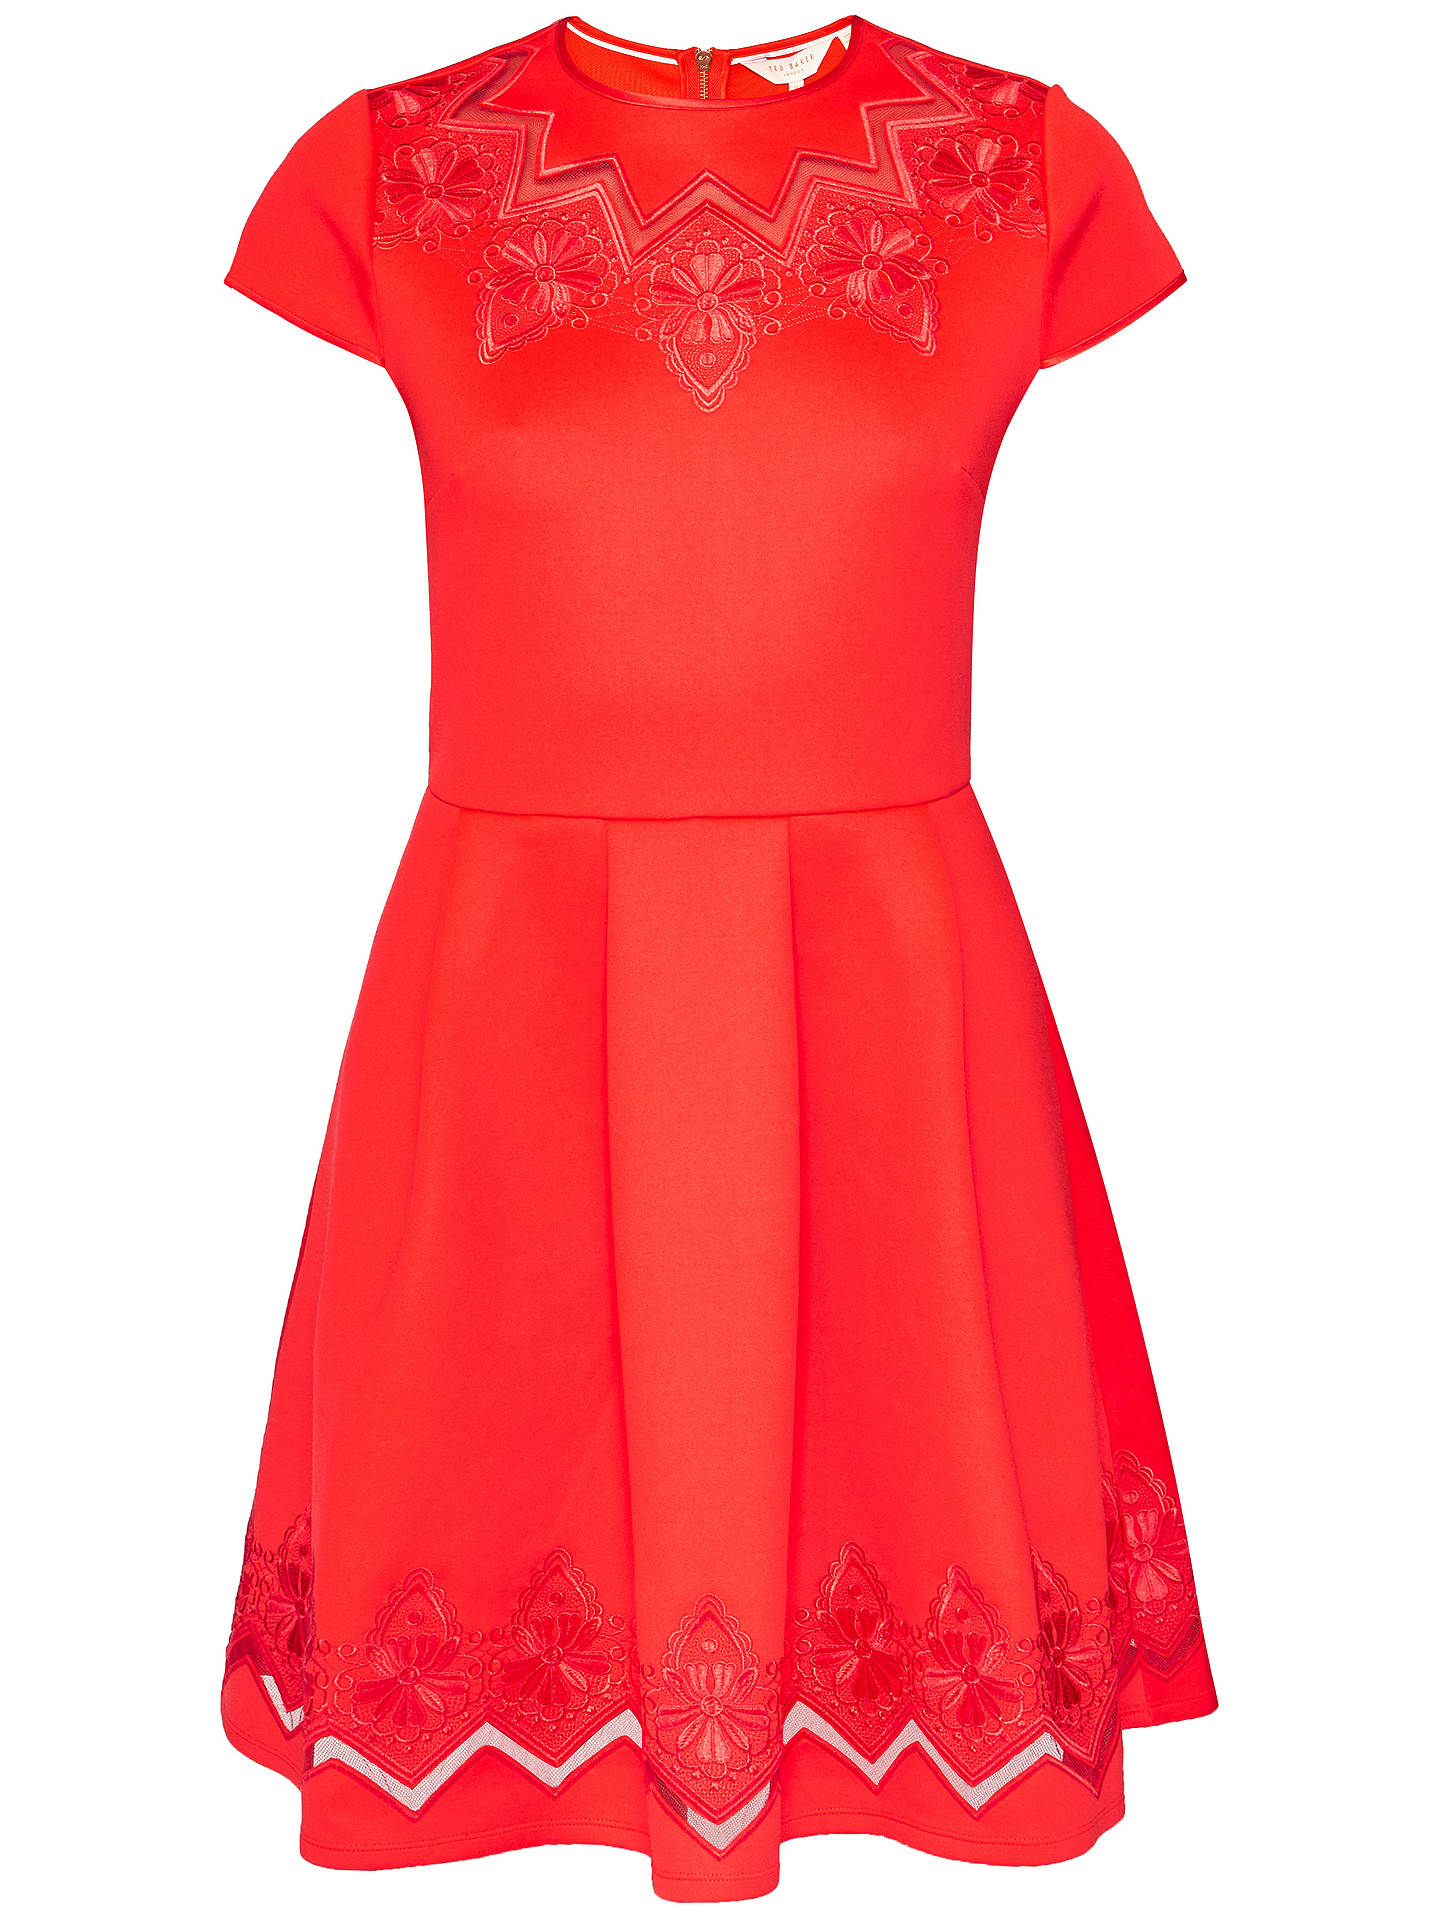 5ff628b6f6 ... BuyTed Baker Cheskka Lace and Mesh Detail Skater Dress